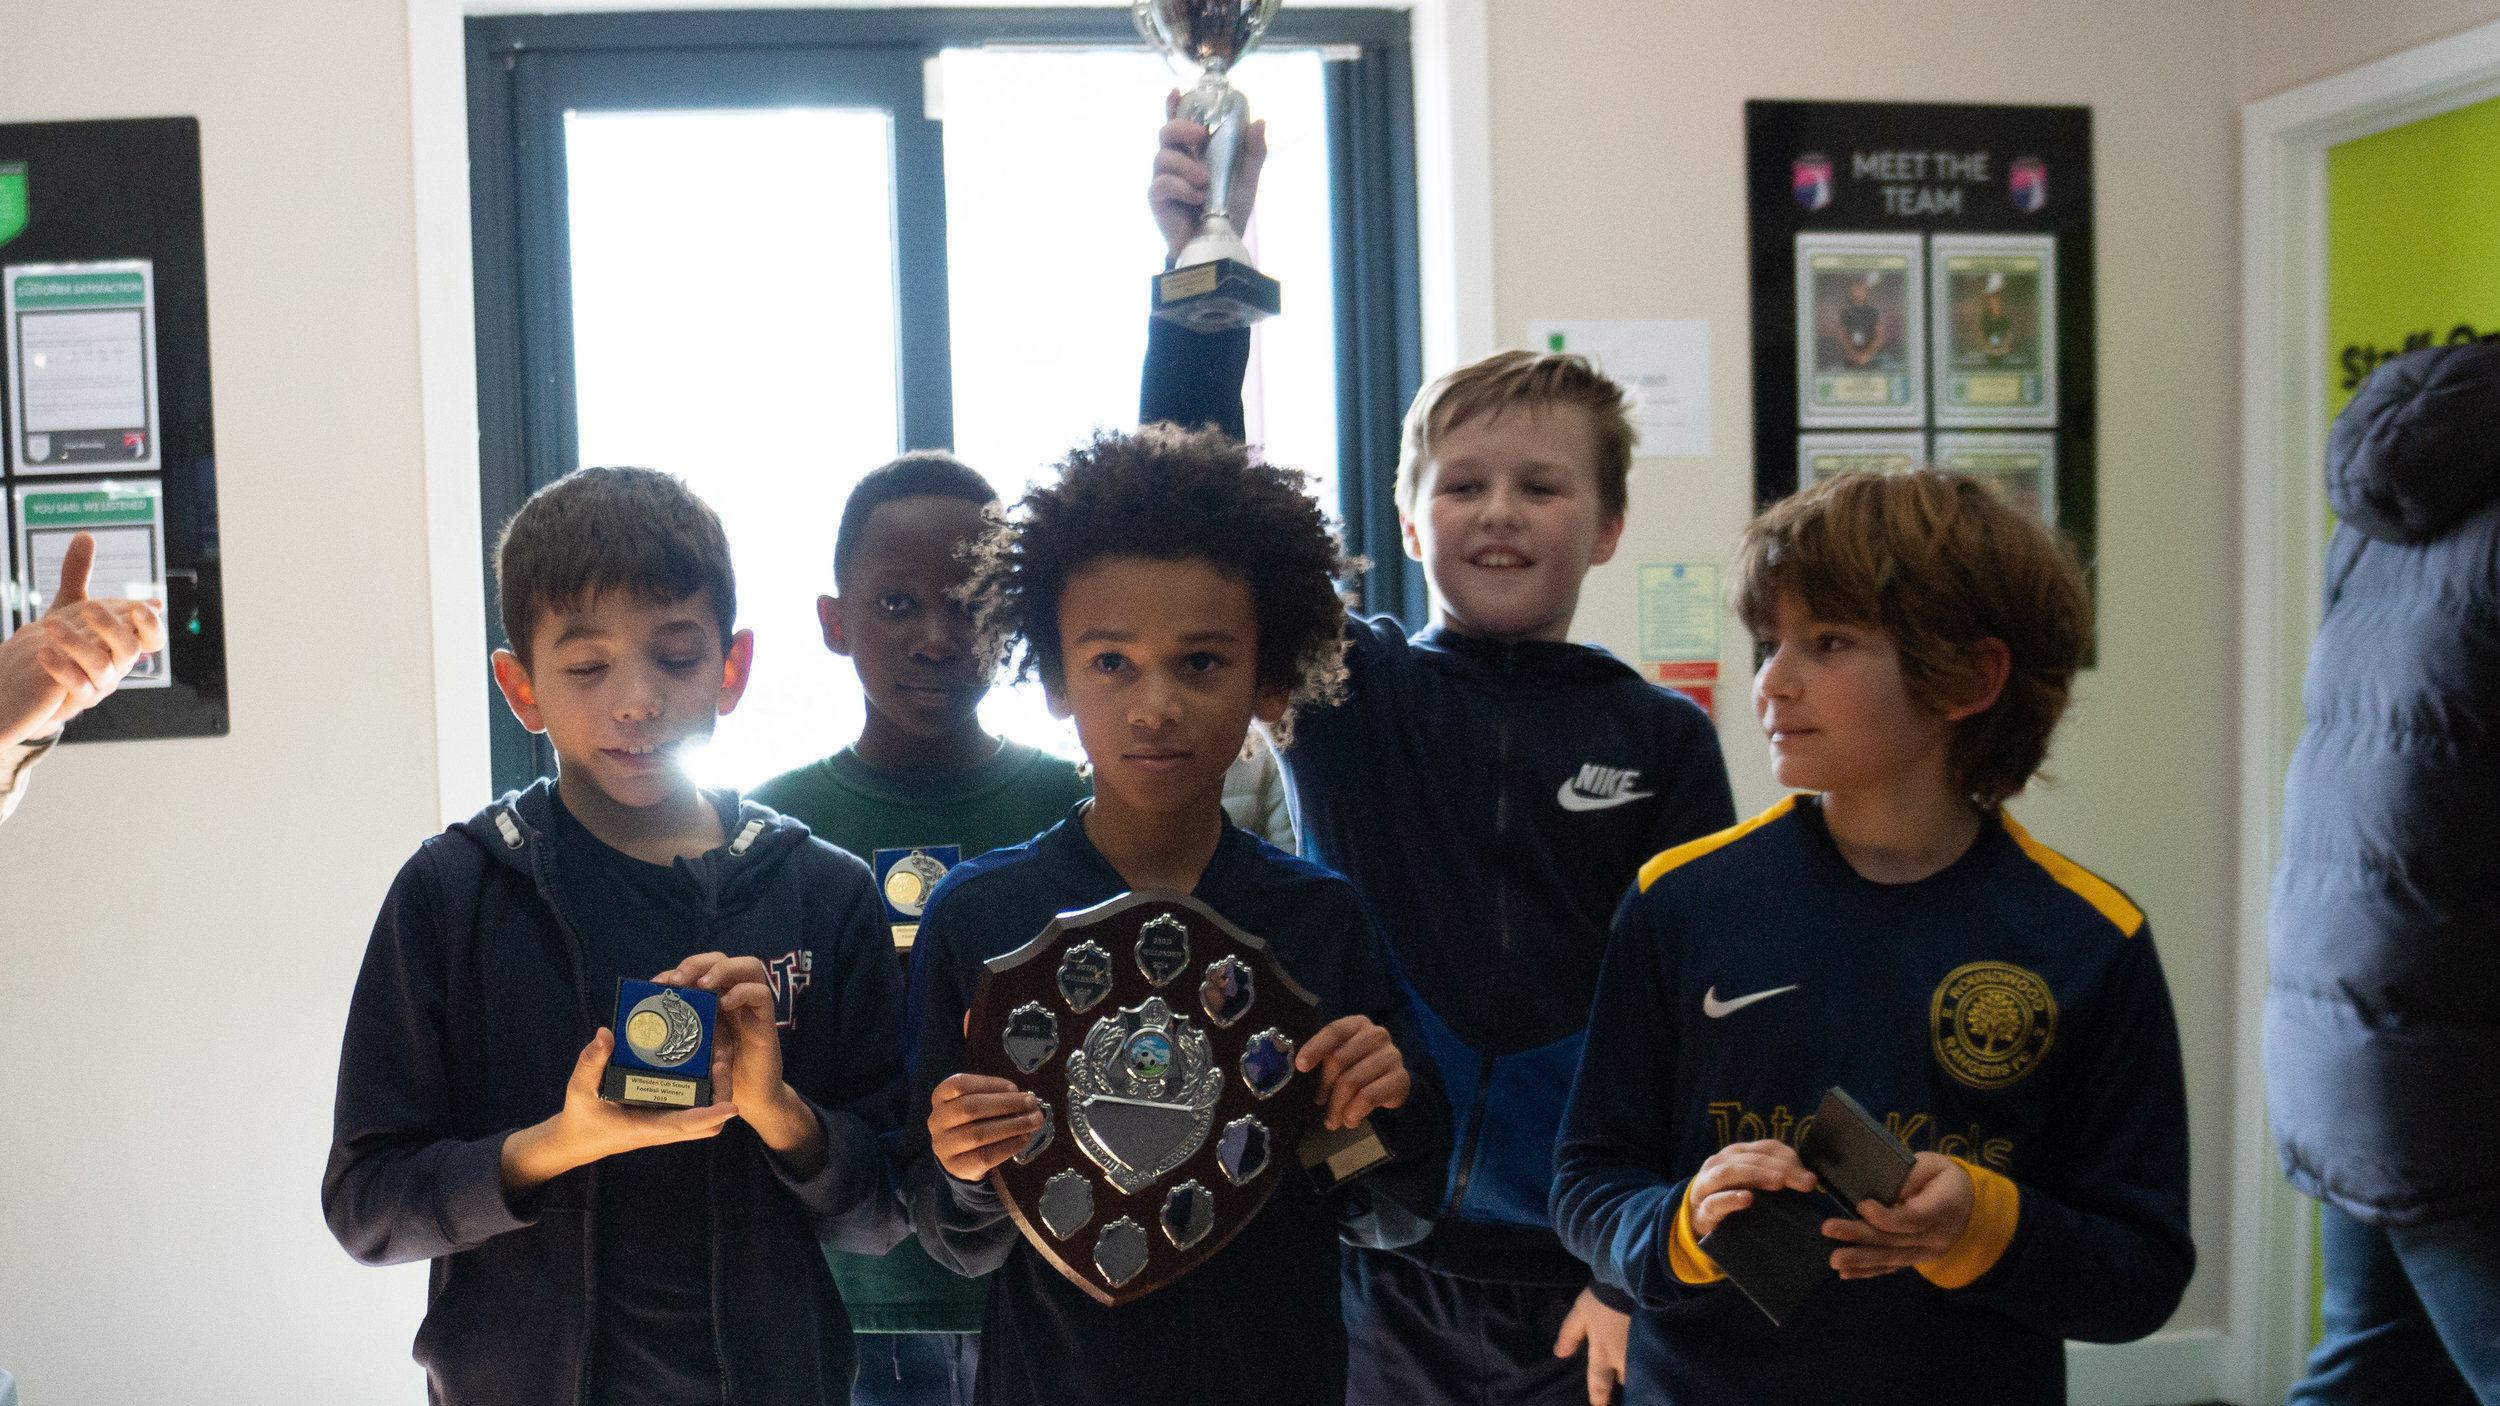 Cub Scout Winners: 25th Willesden - A Team